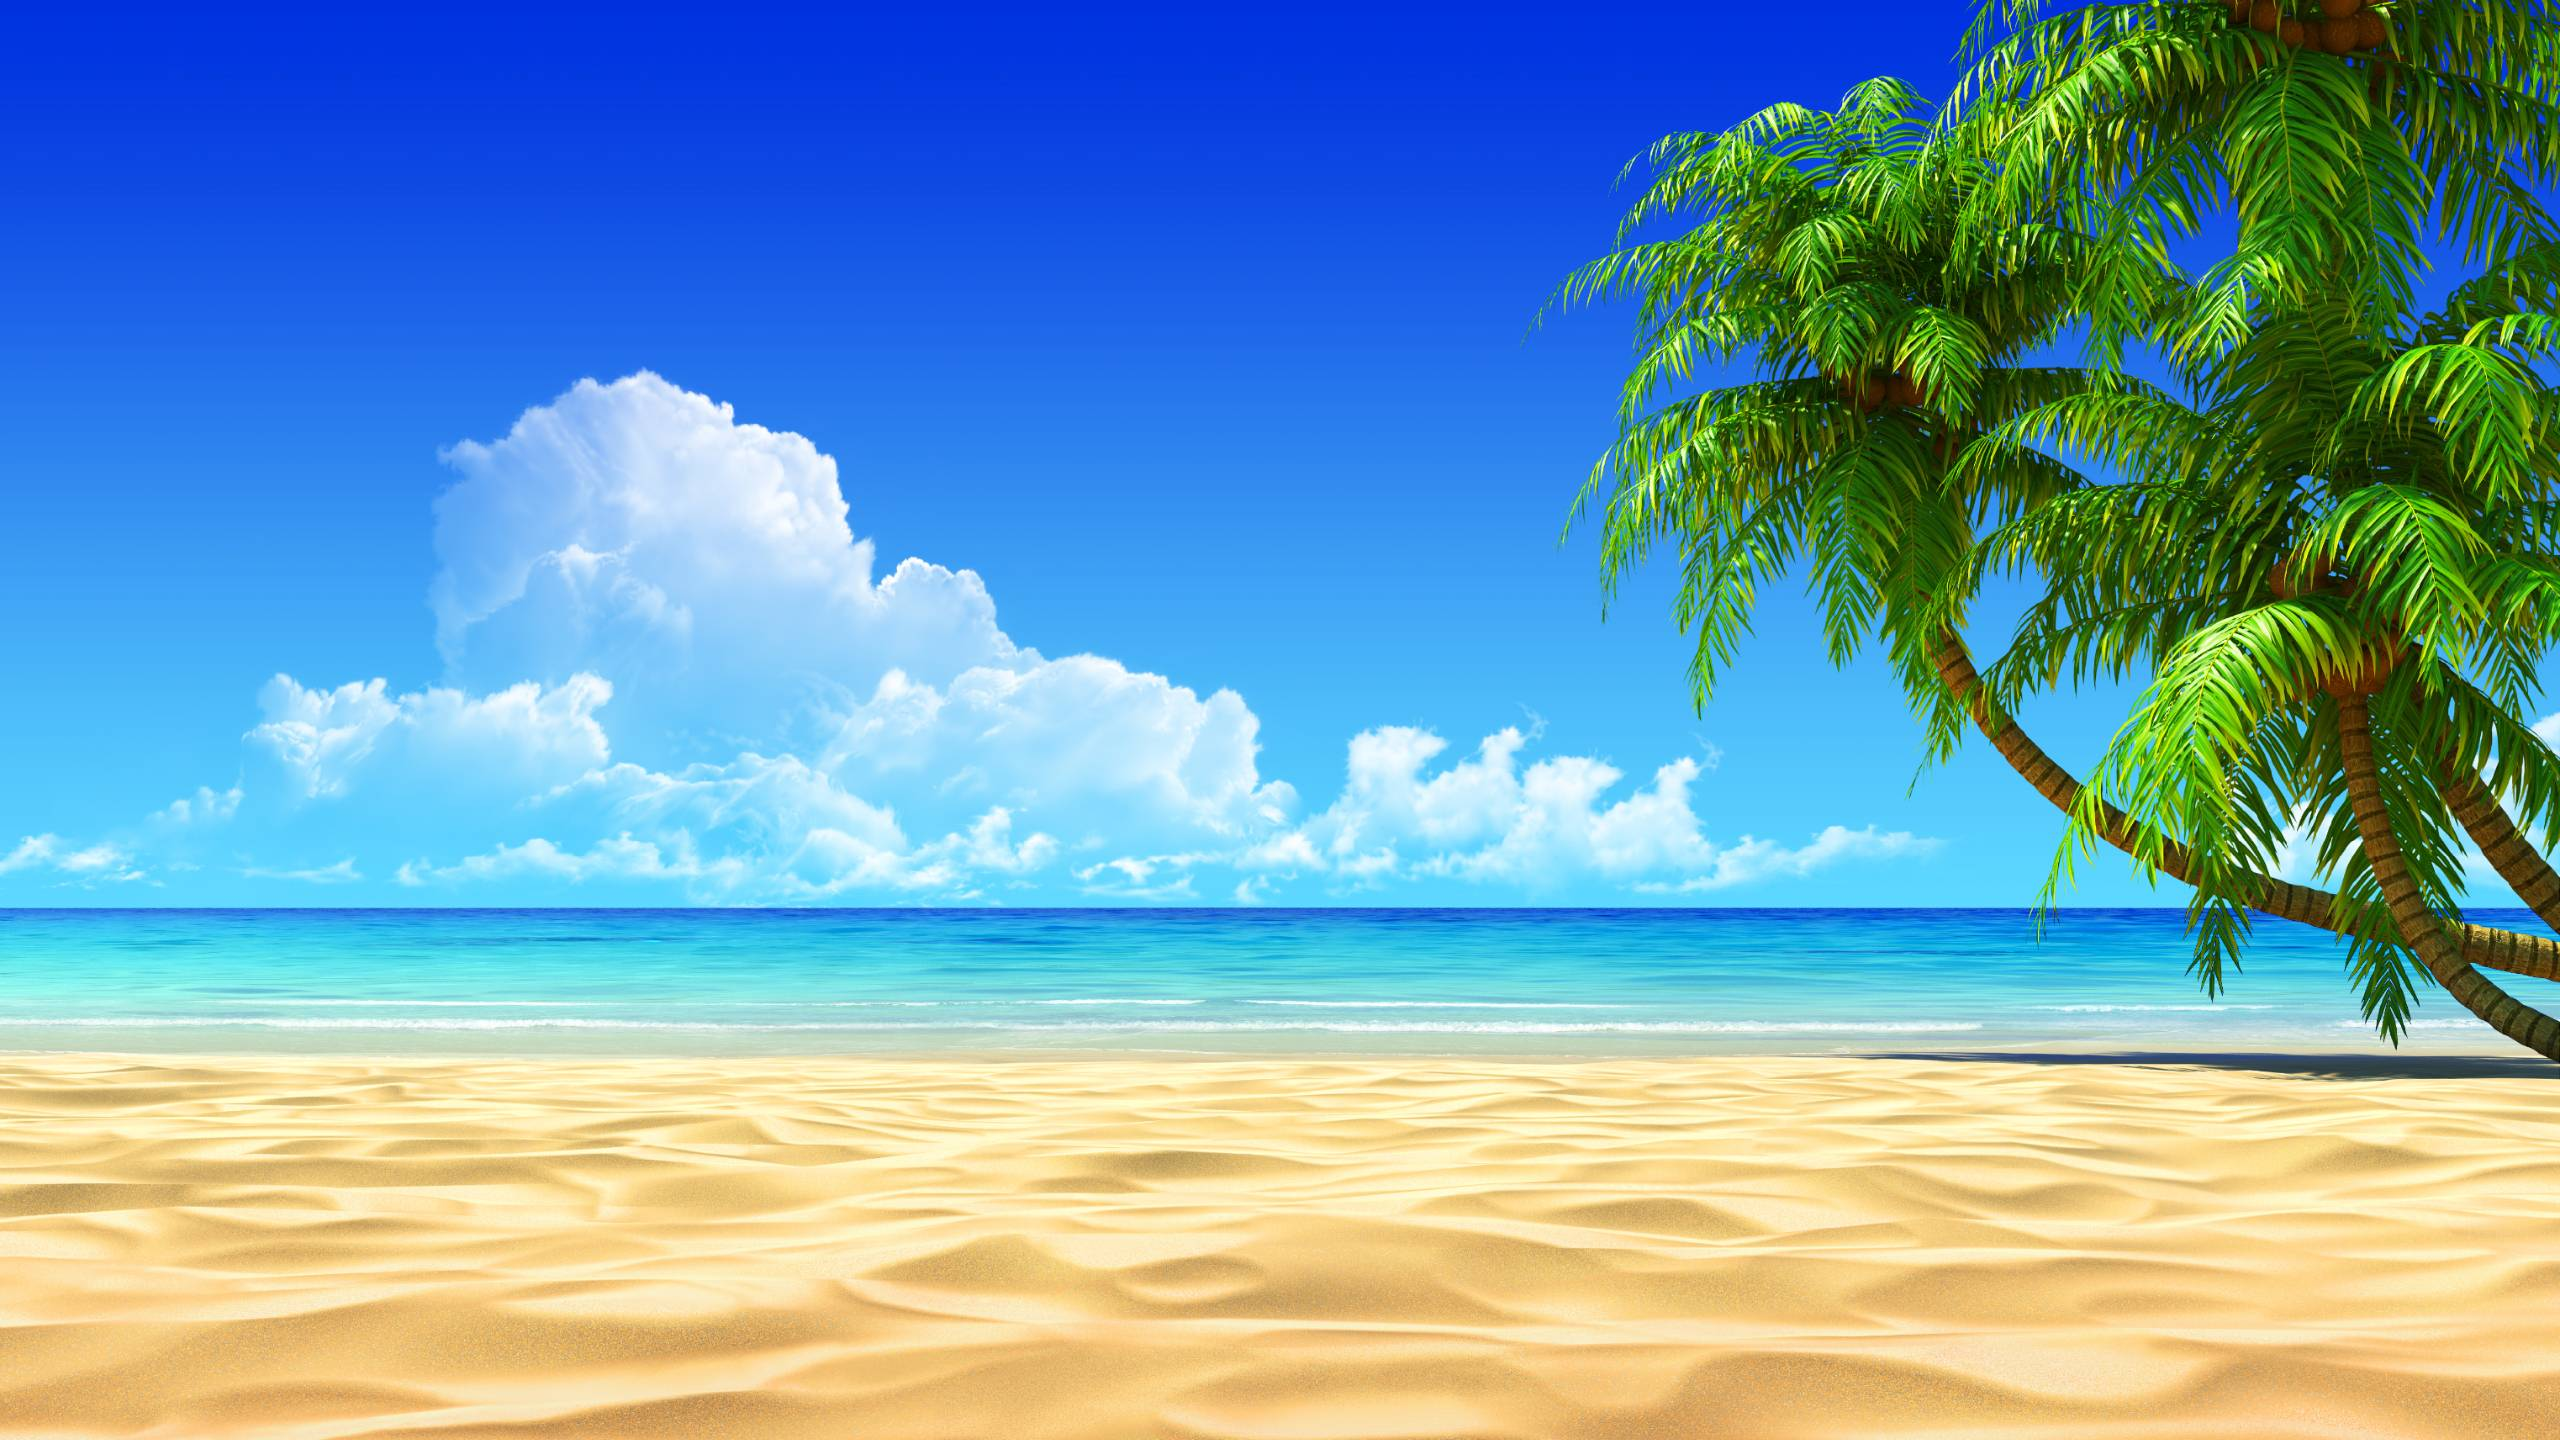 Http Wallpapercave Com Free Tropical Desktop Backgrounds